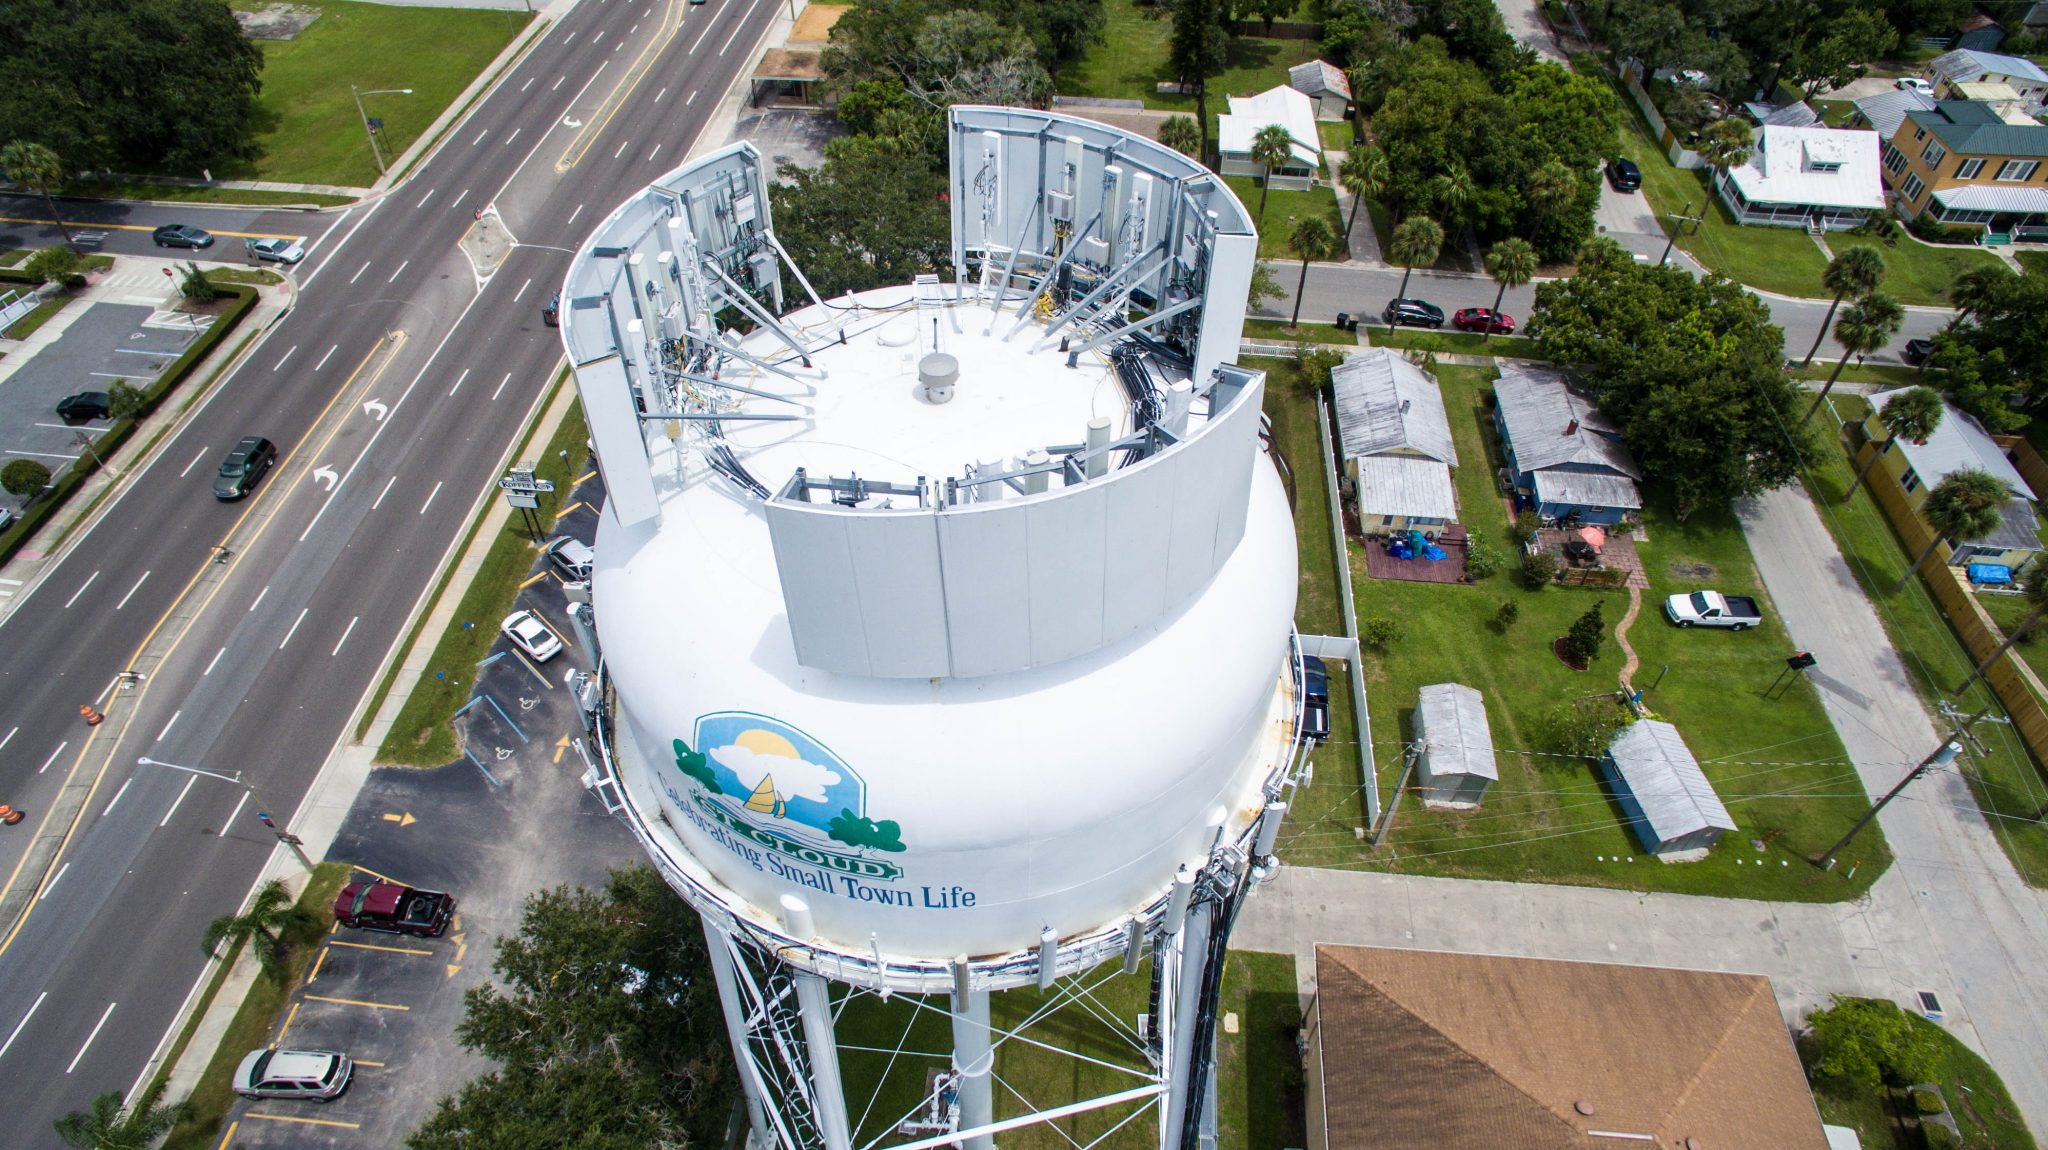 A2E0833-WATER-TOWER-INSTALL-8-14-15-21-of-25